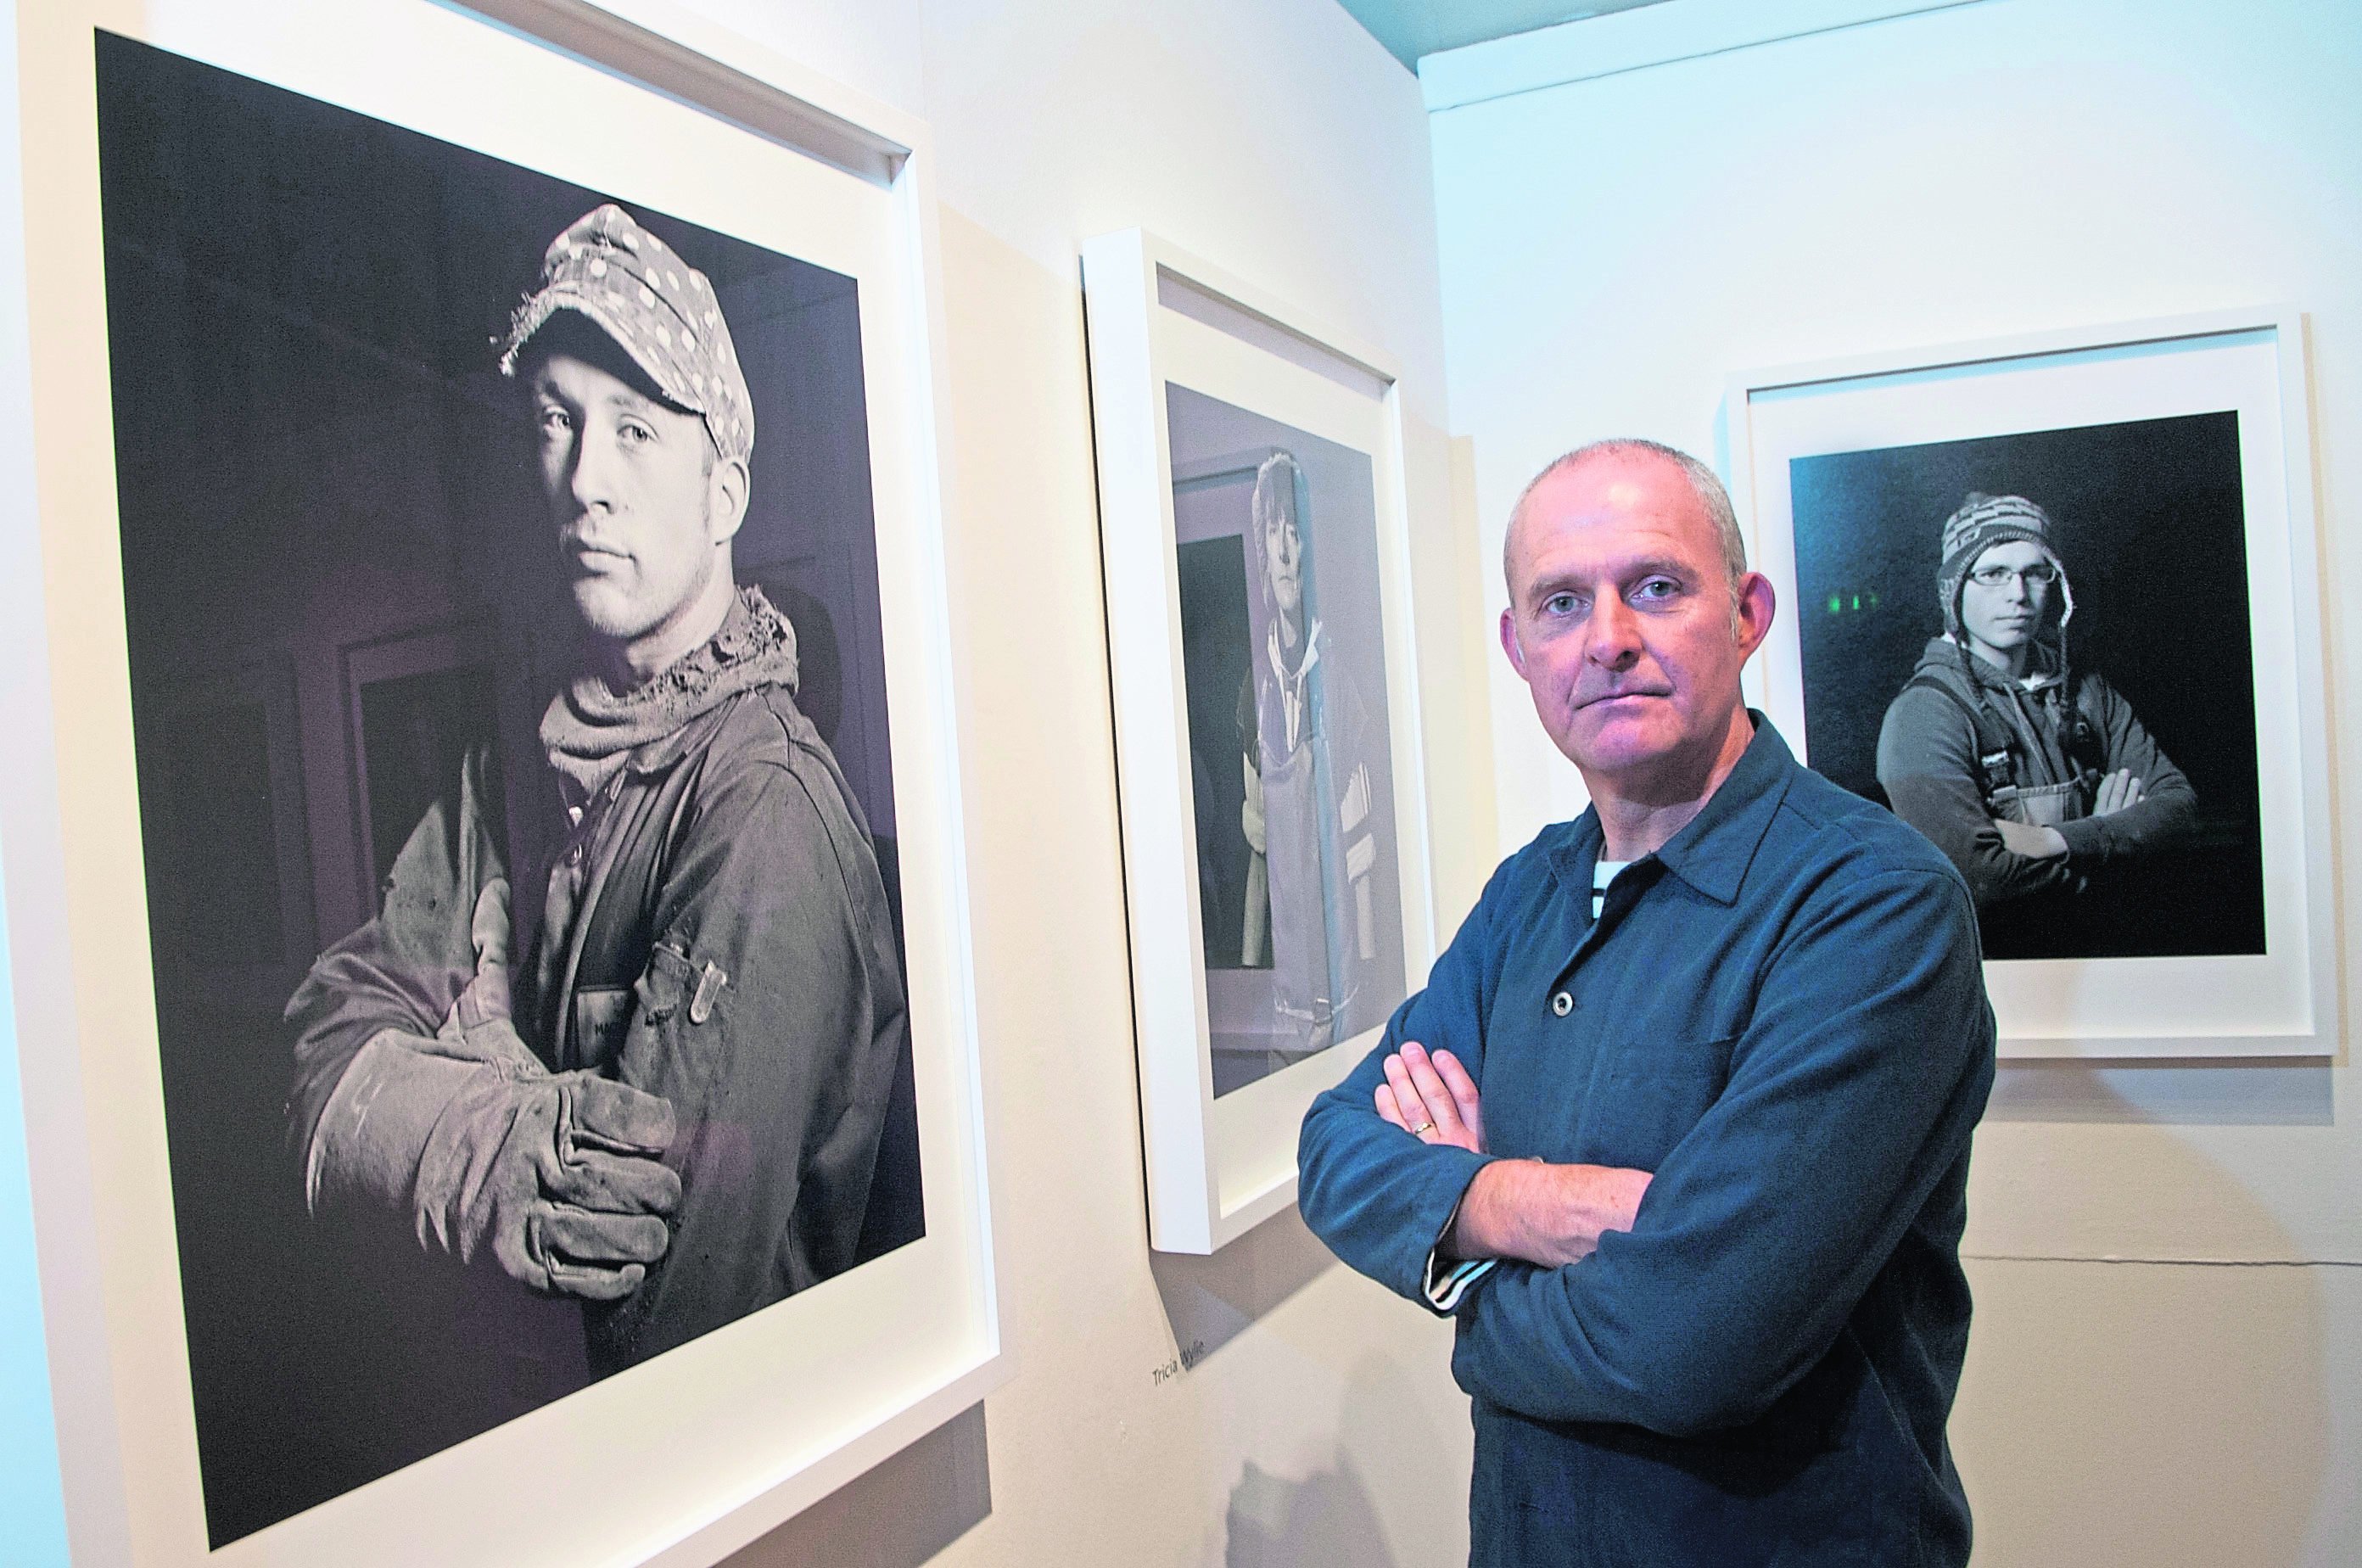 Photographic portraits by London-based Scottish photographer Paul Duke of working men and women from north-east Scotlands fishing communities were unveiled at Aberdeen Maritime Museum.